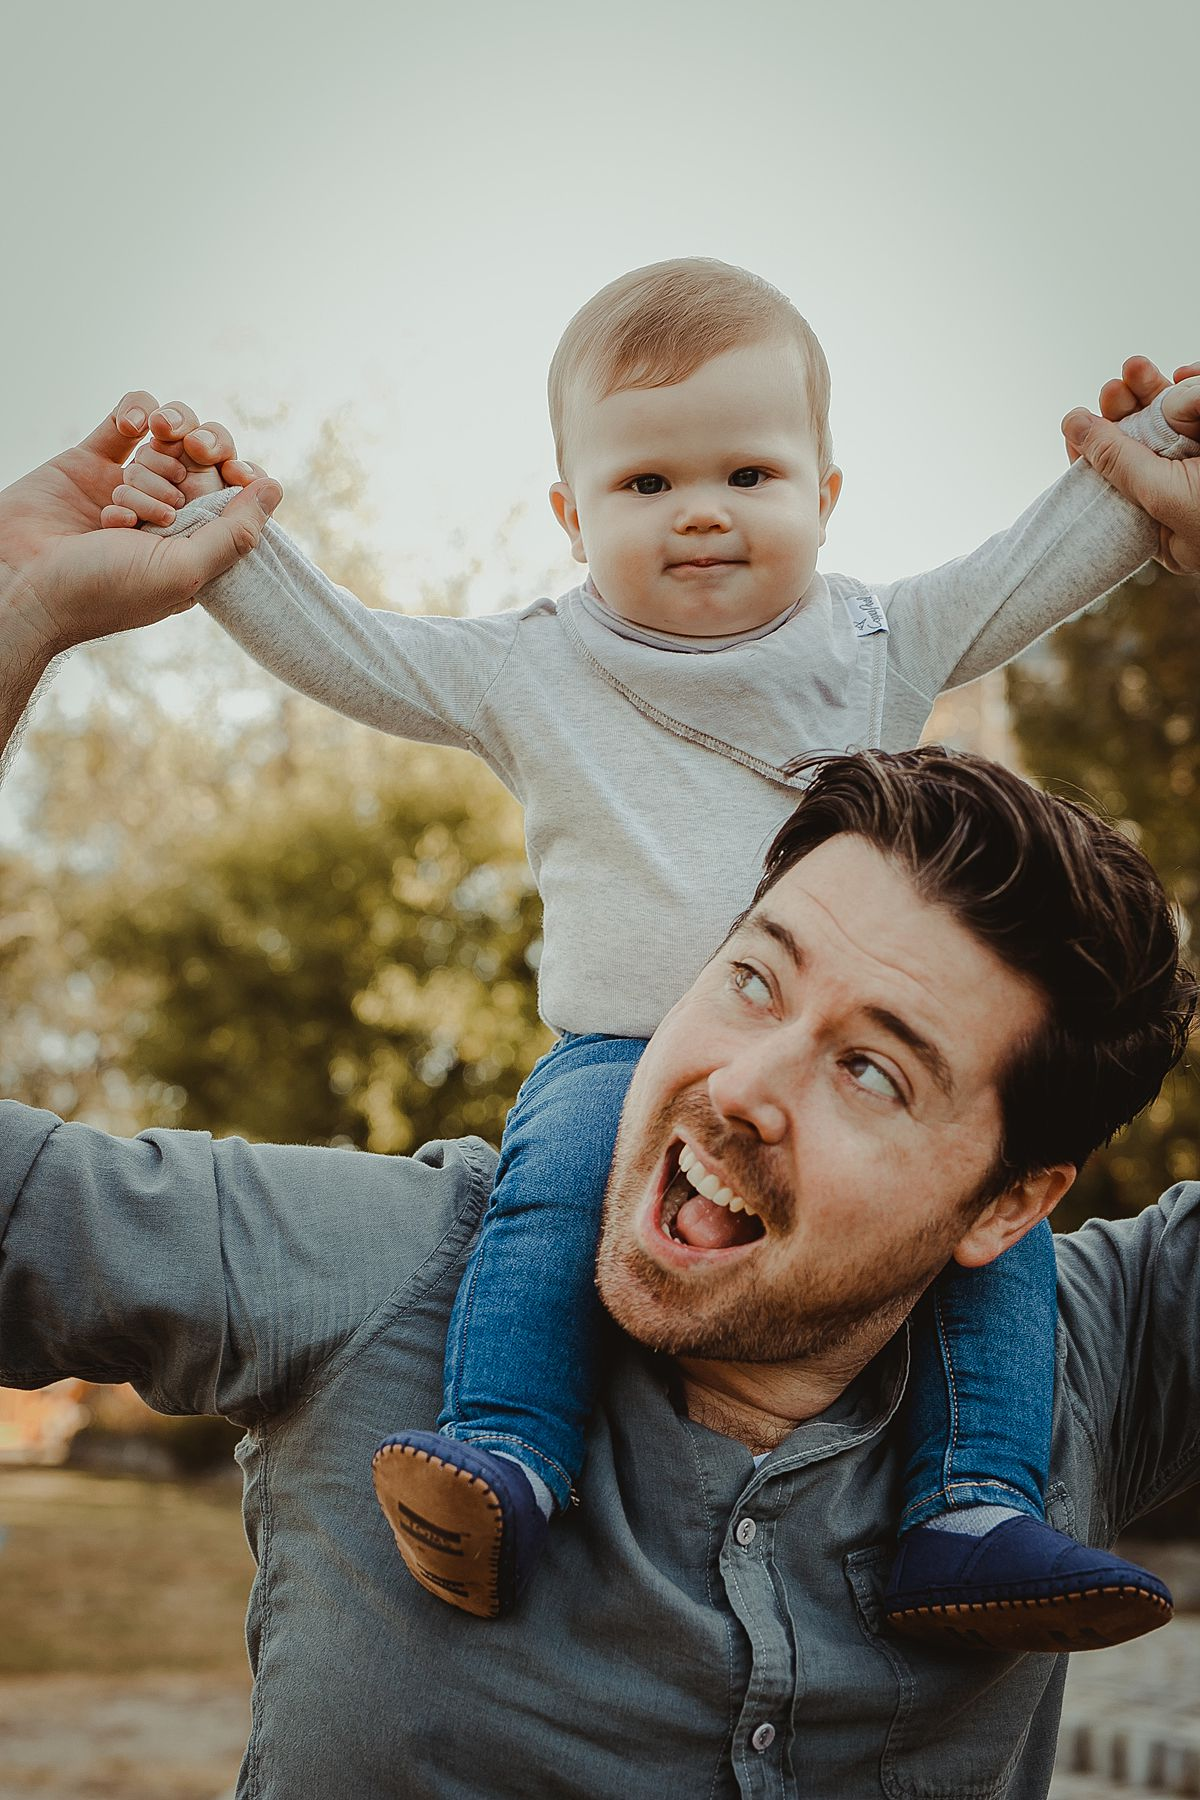 son enjoying shoulder ride at local park in queens. image by photographer krystil mcdowall